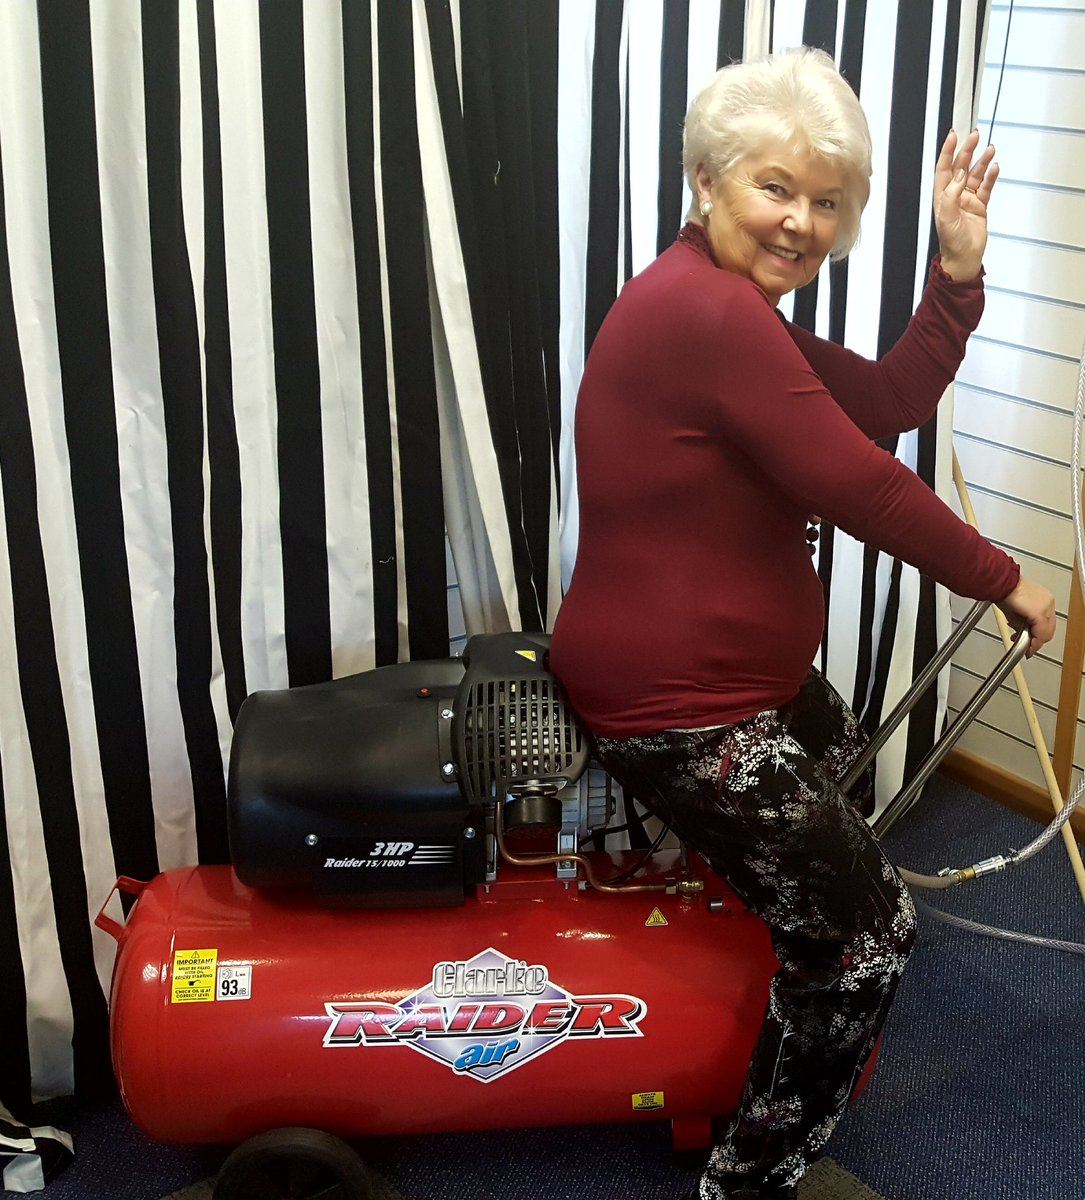 Maureen testing upholstery equipment